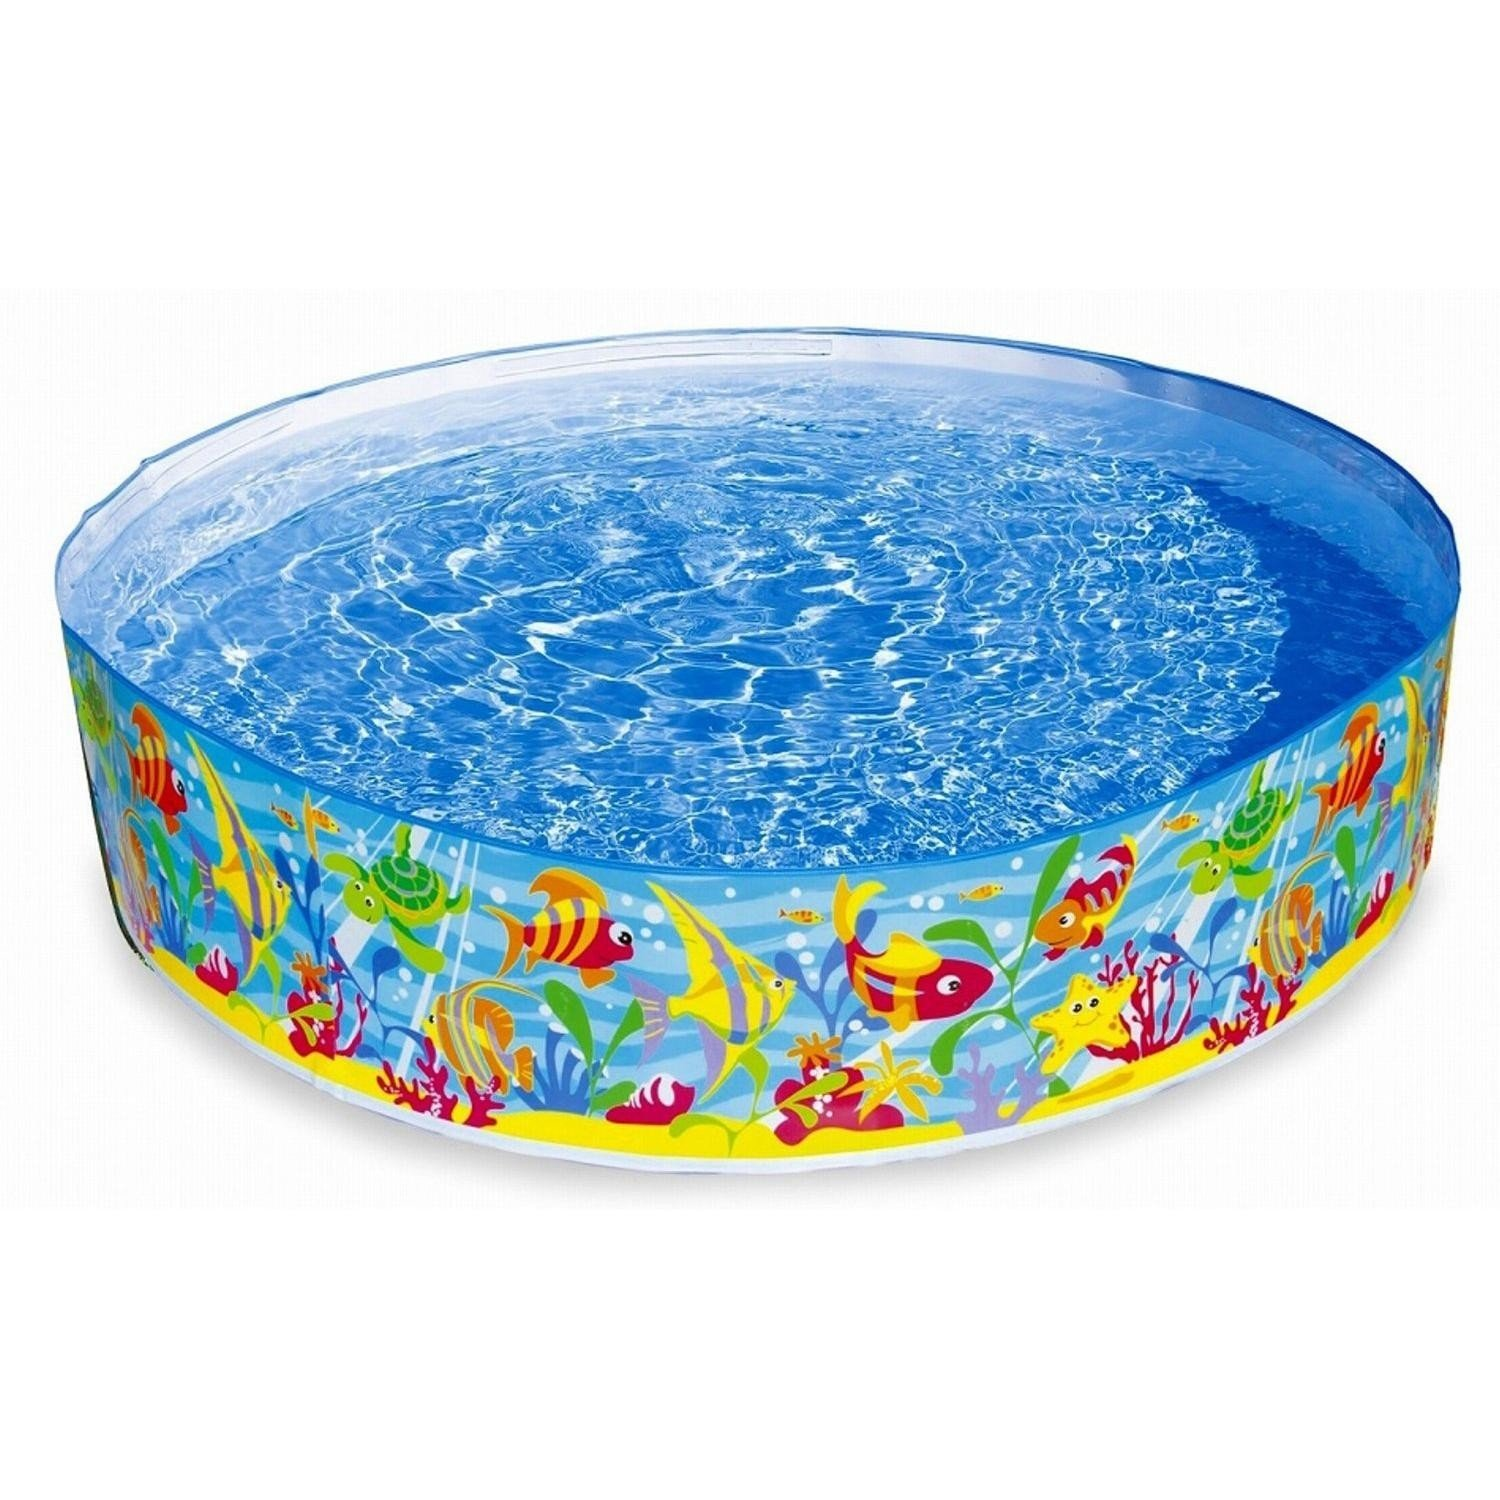 John adams 6 ocean play snapset pool ebay for Garden paddling pools